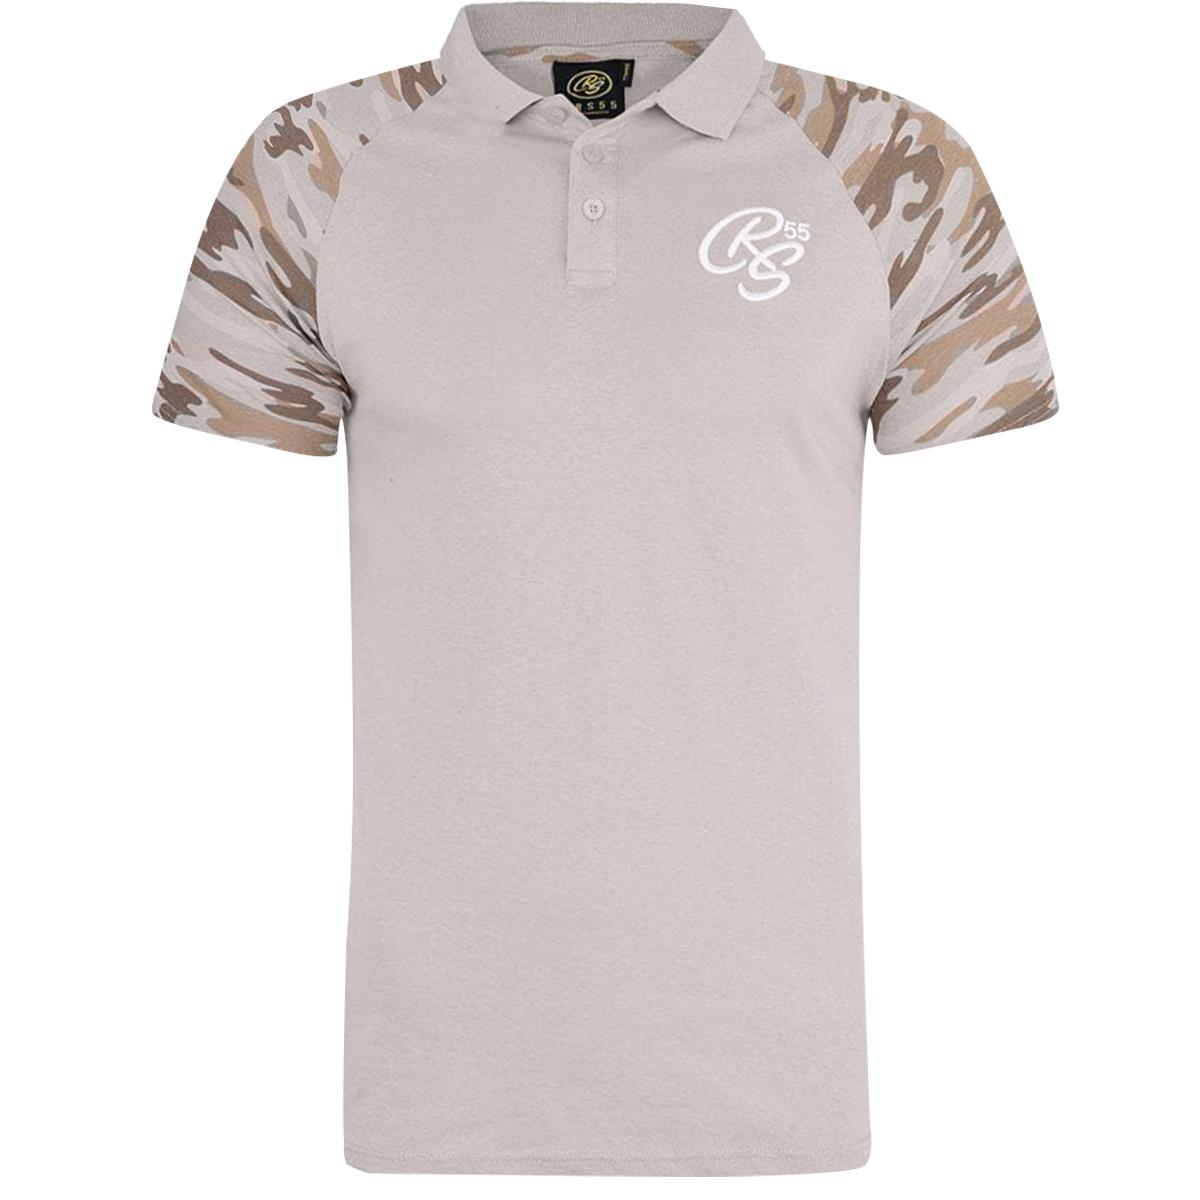 Mens-Crosshatch-Army-Polo-T-Shirt-Collared-T-Shirt-Camo-Sleeve-Casual-Top-Tee thumbnail 2